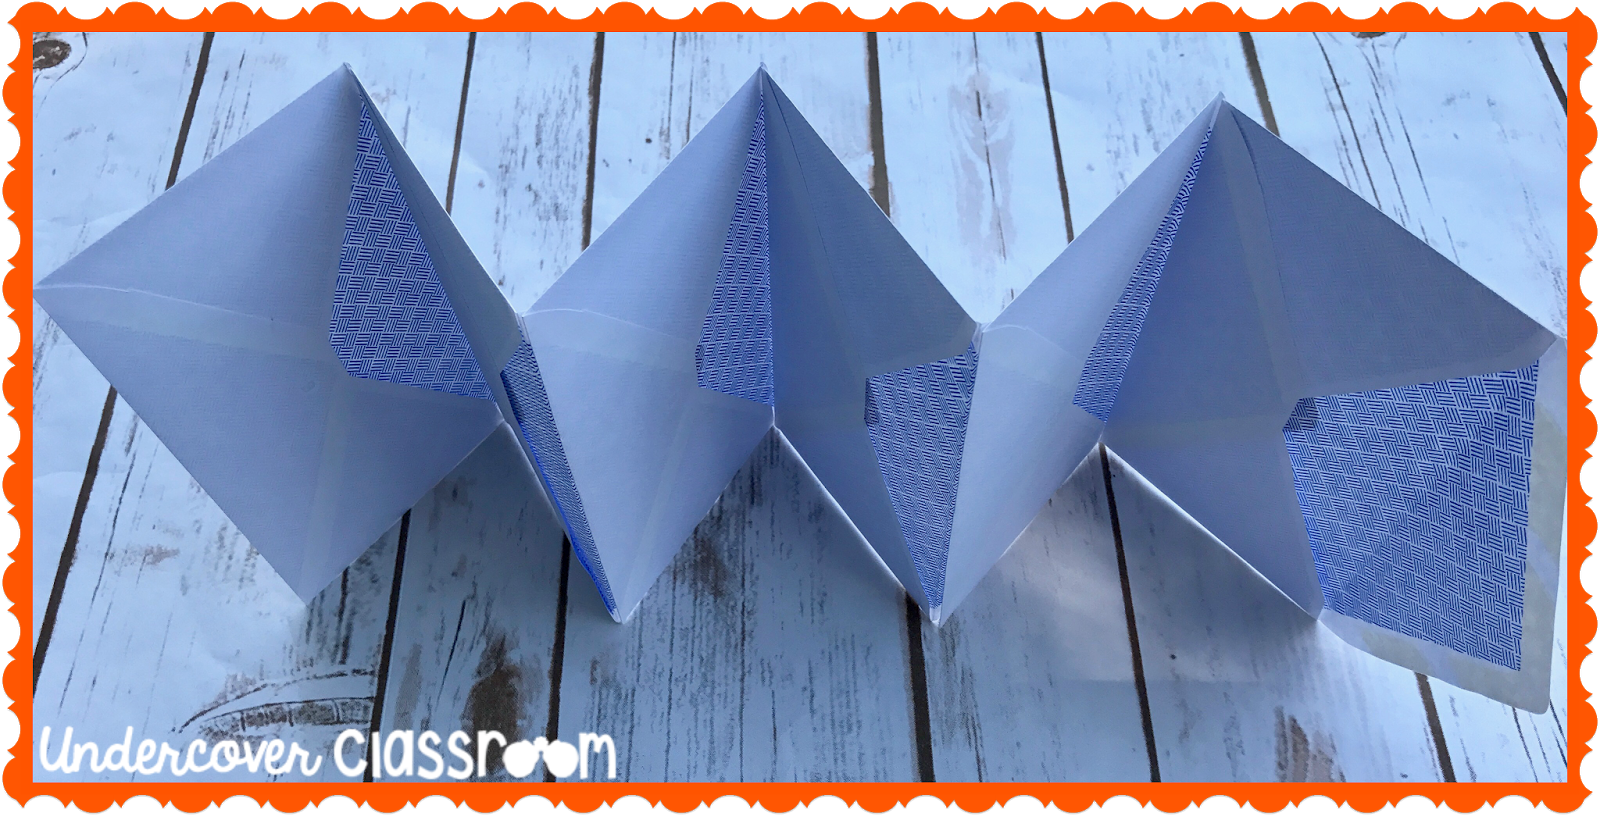 Learn how to make an accordion book out of envelopes that you can use in your classroom. Accordion envelope books are a handy tool you can use for many topics. Just fill up the pockets with content!